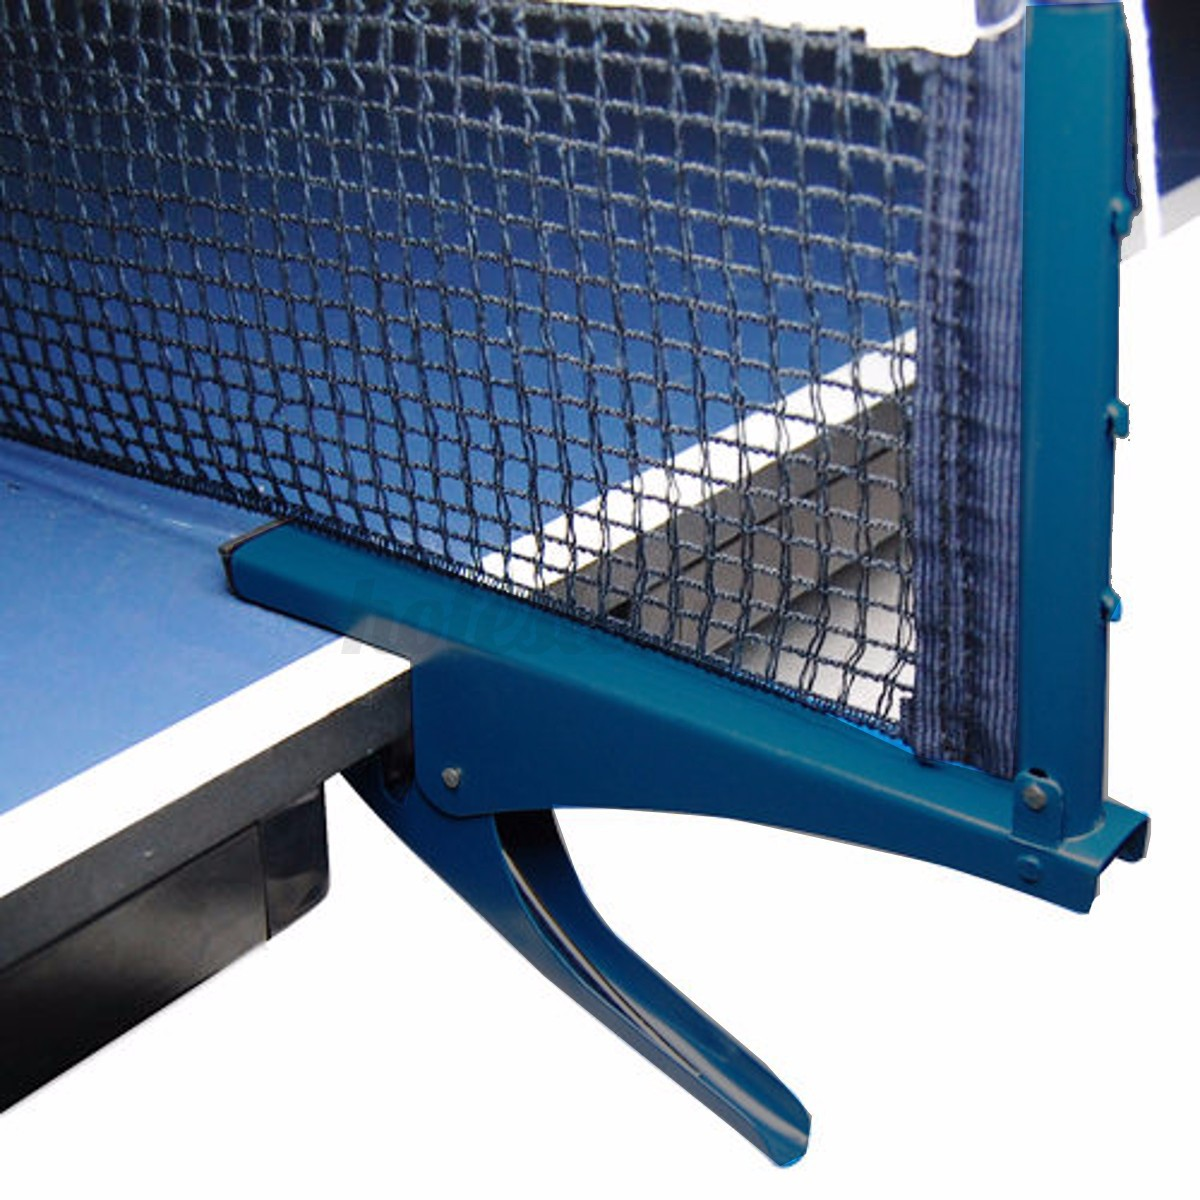 Table-Tennis-Ping-Pong-Net-Indoor-Sports-Game-Post-Clamp-Stand-Set thumbnail 1